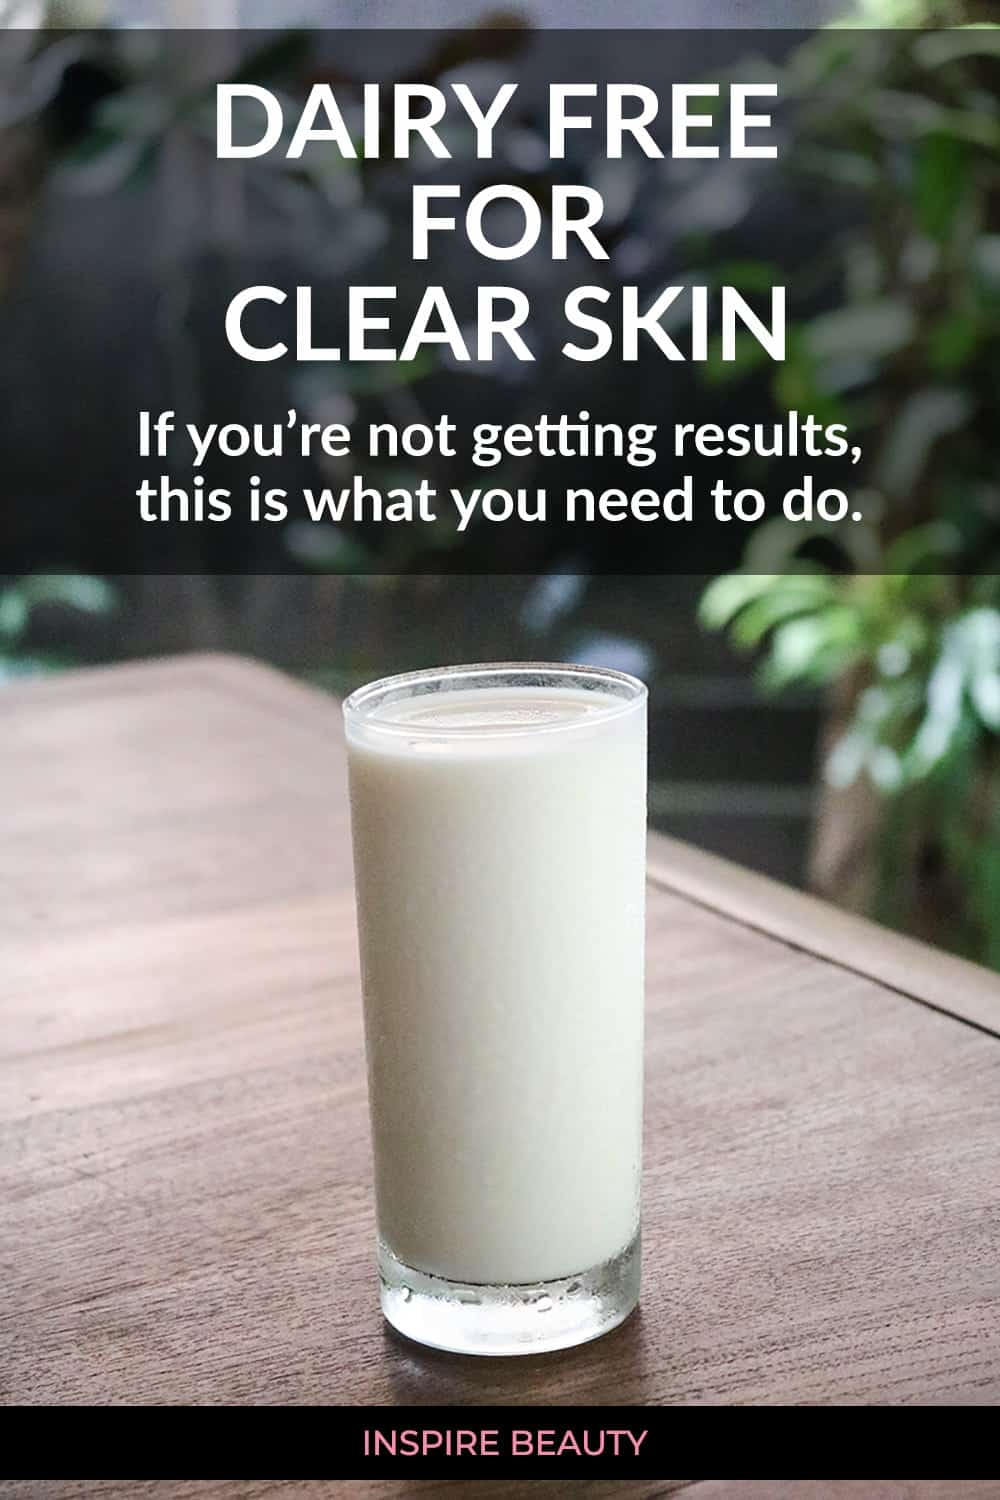 Dairy free not clearing up your skin? Here's how to do it right to get clear skin.